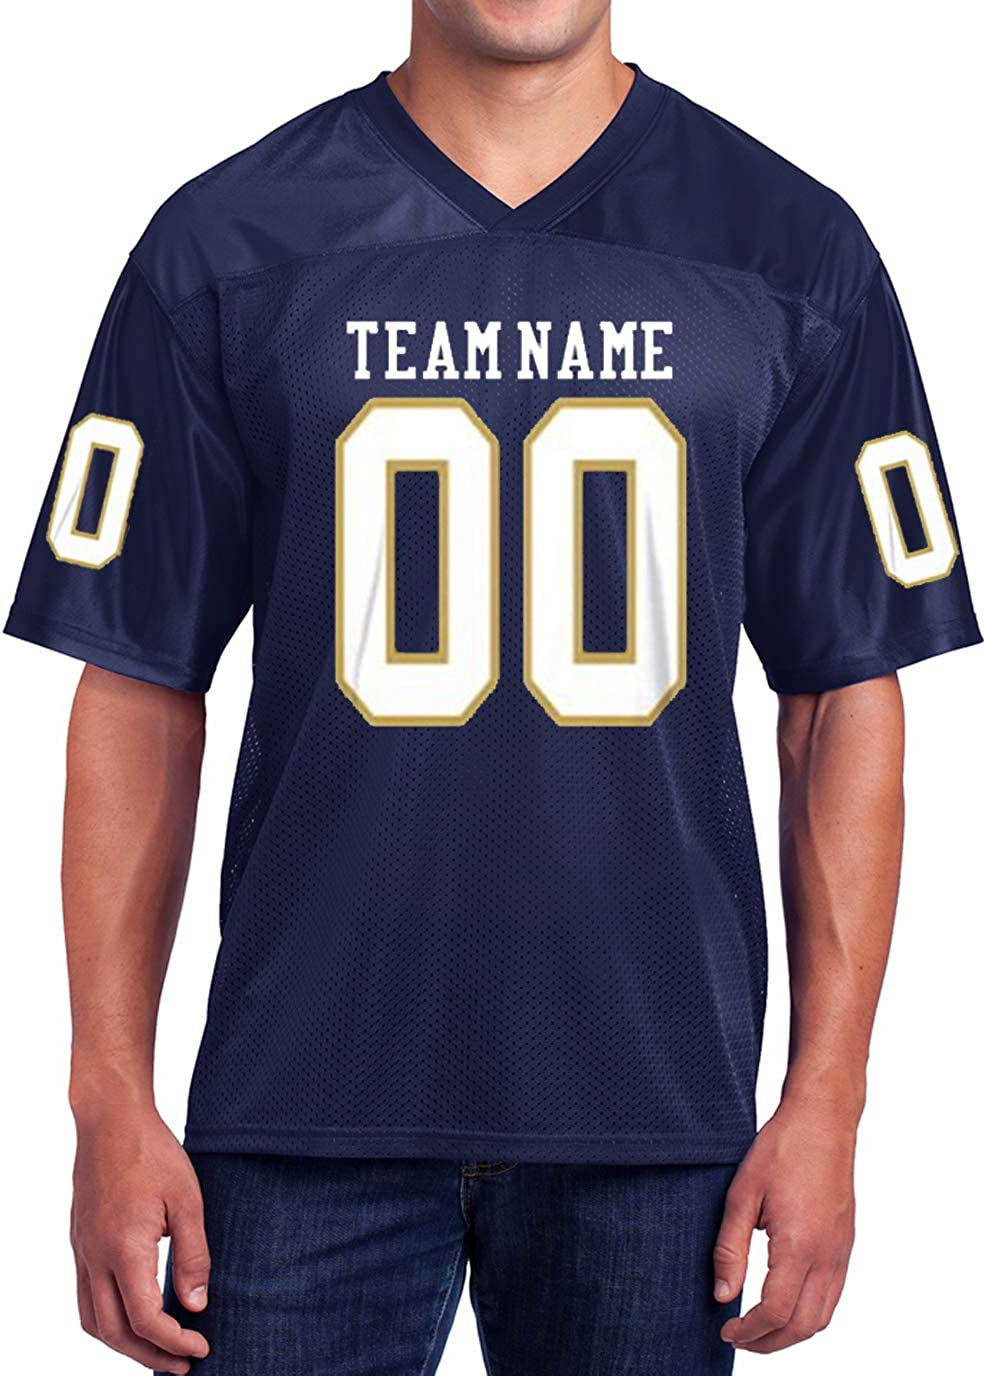 create a football jersey game